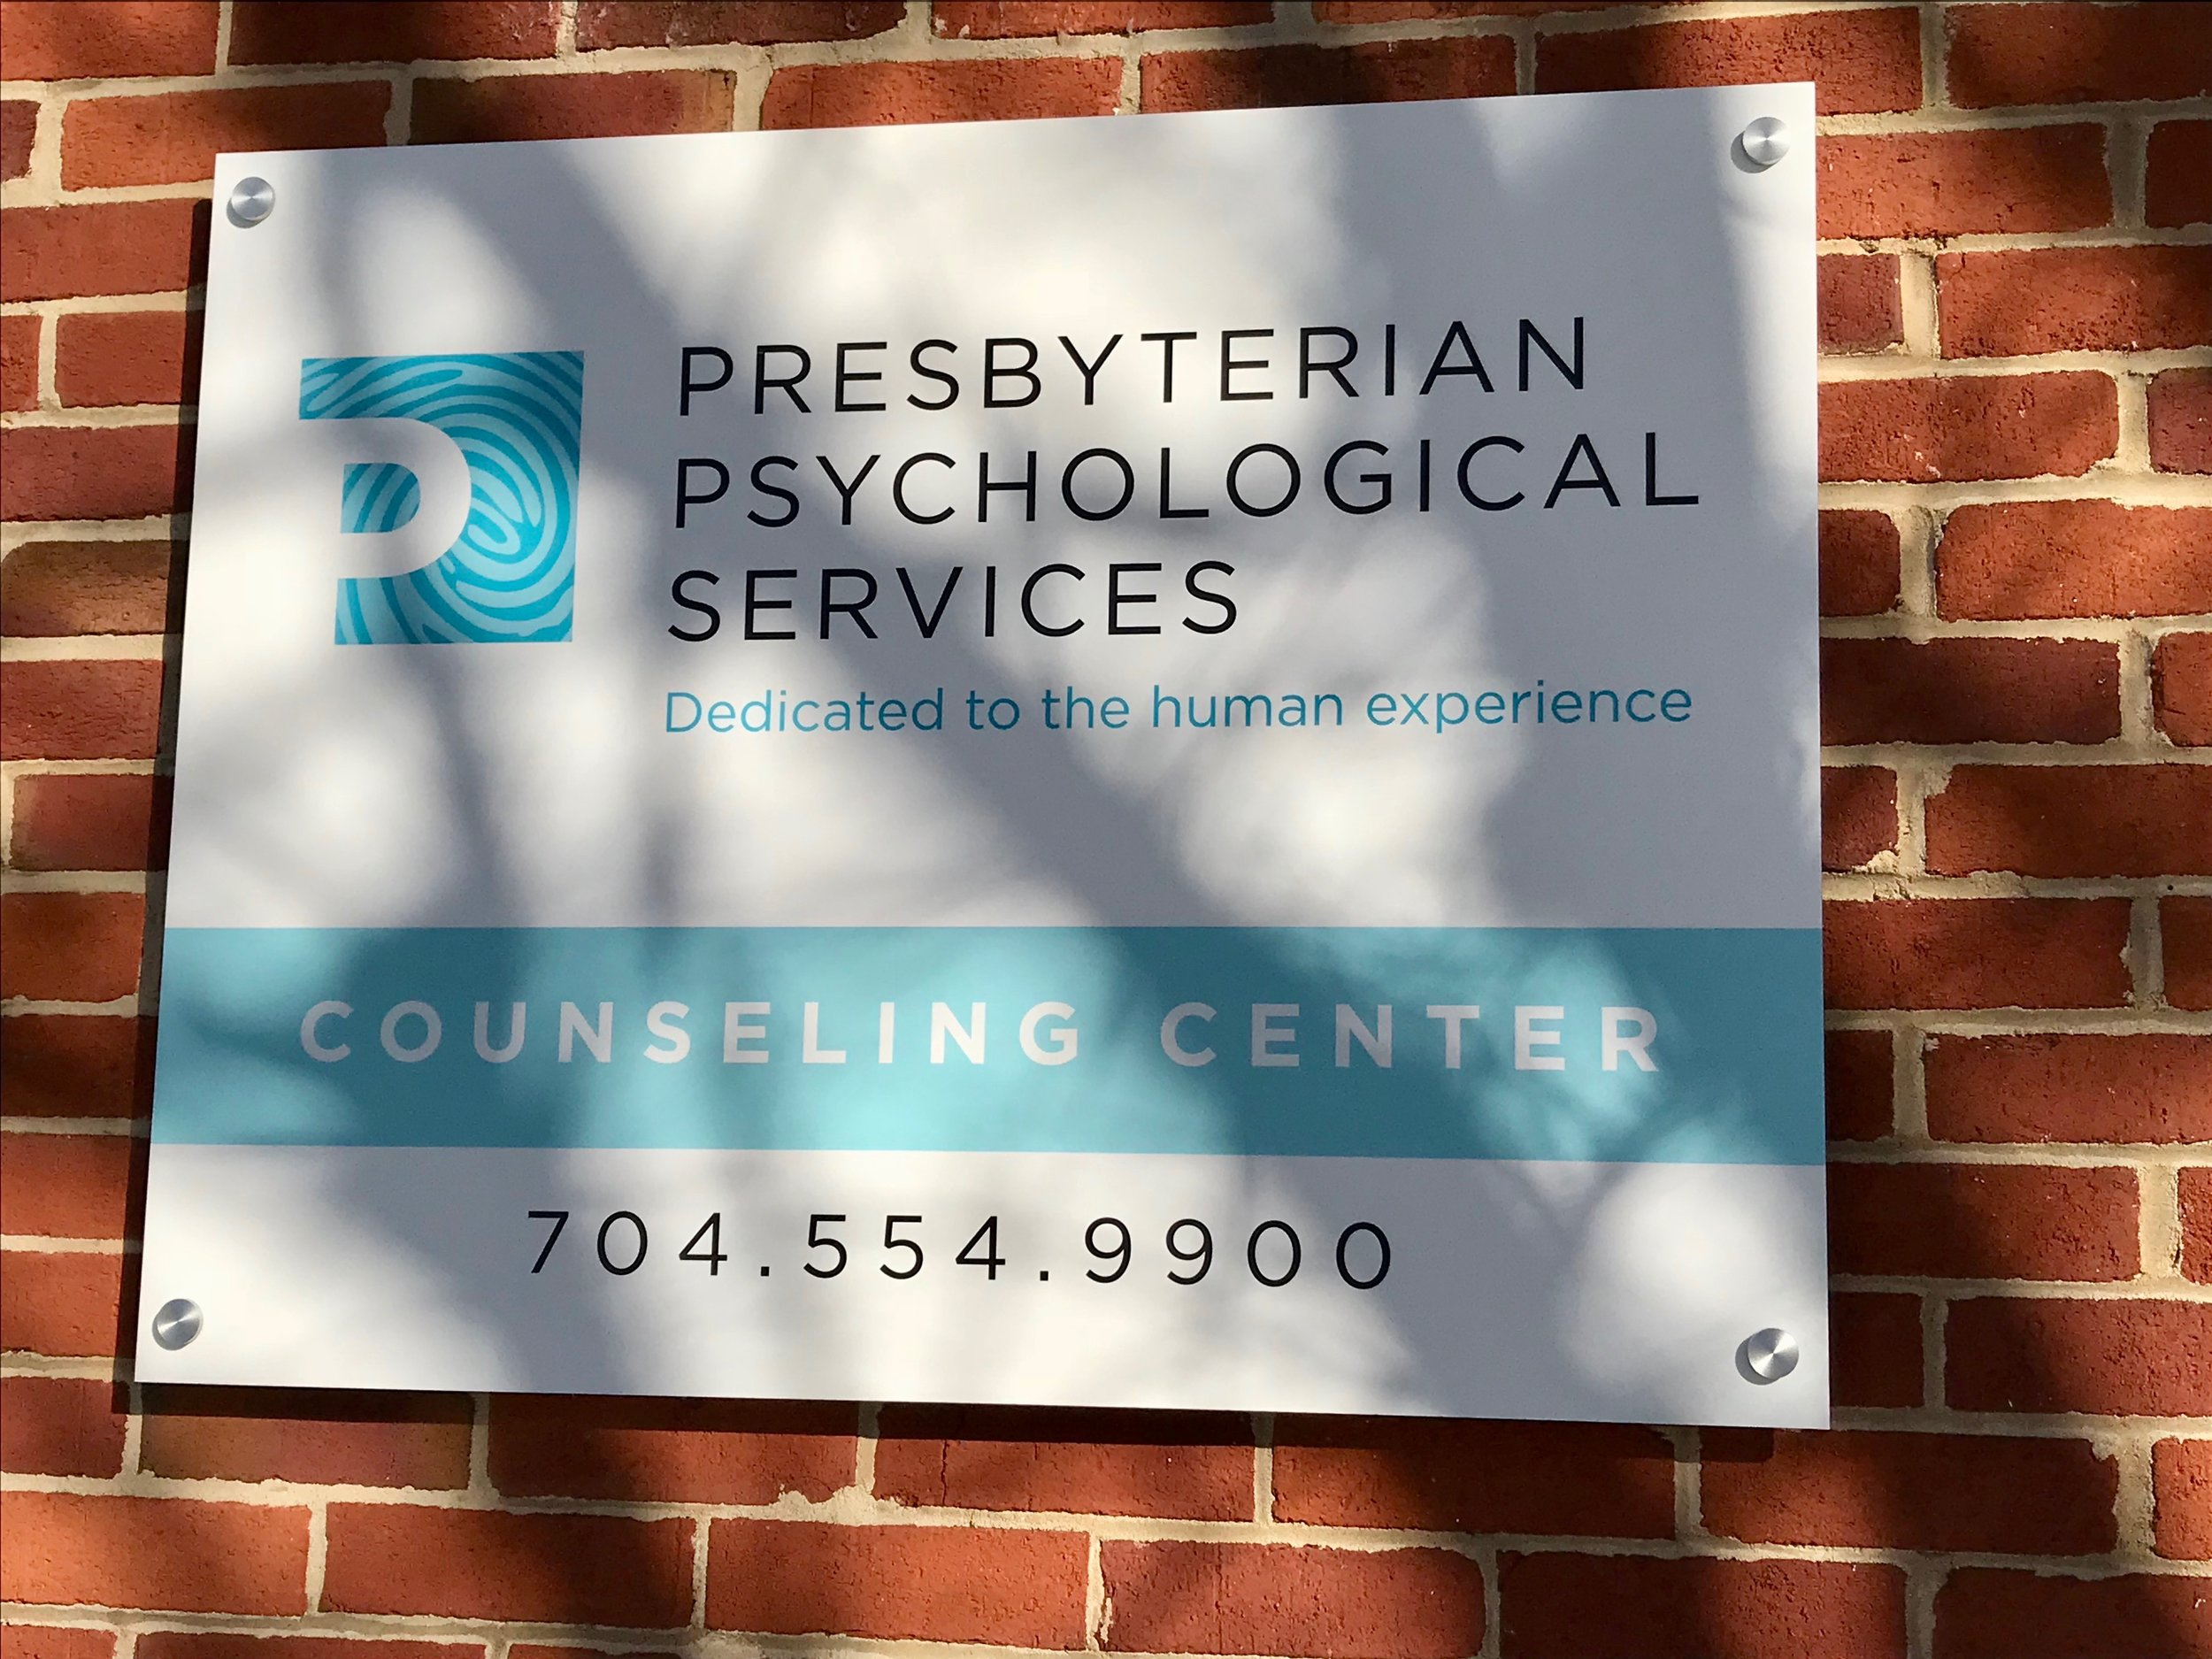 Office Location - Presbyterian Psychological Services5203 Sharon RoadCharlotte, NC 28210